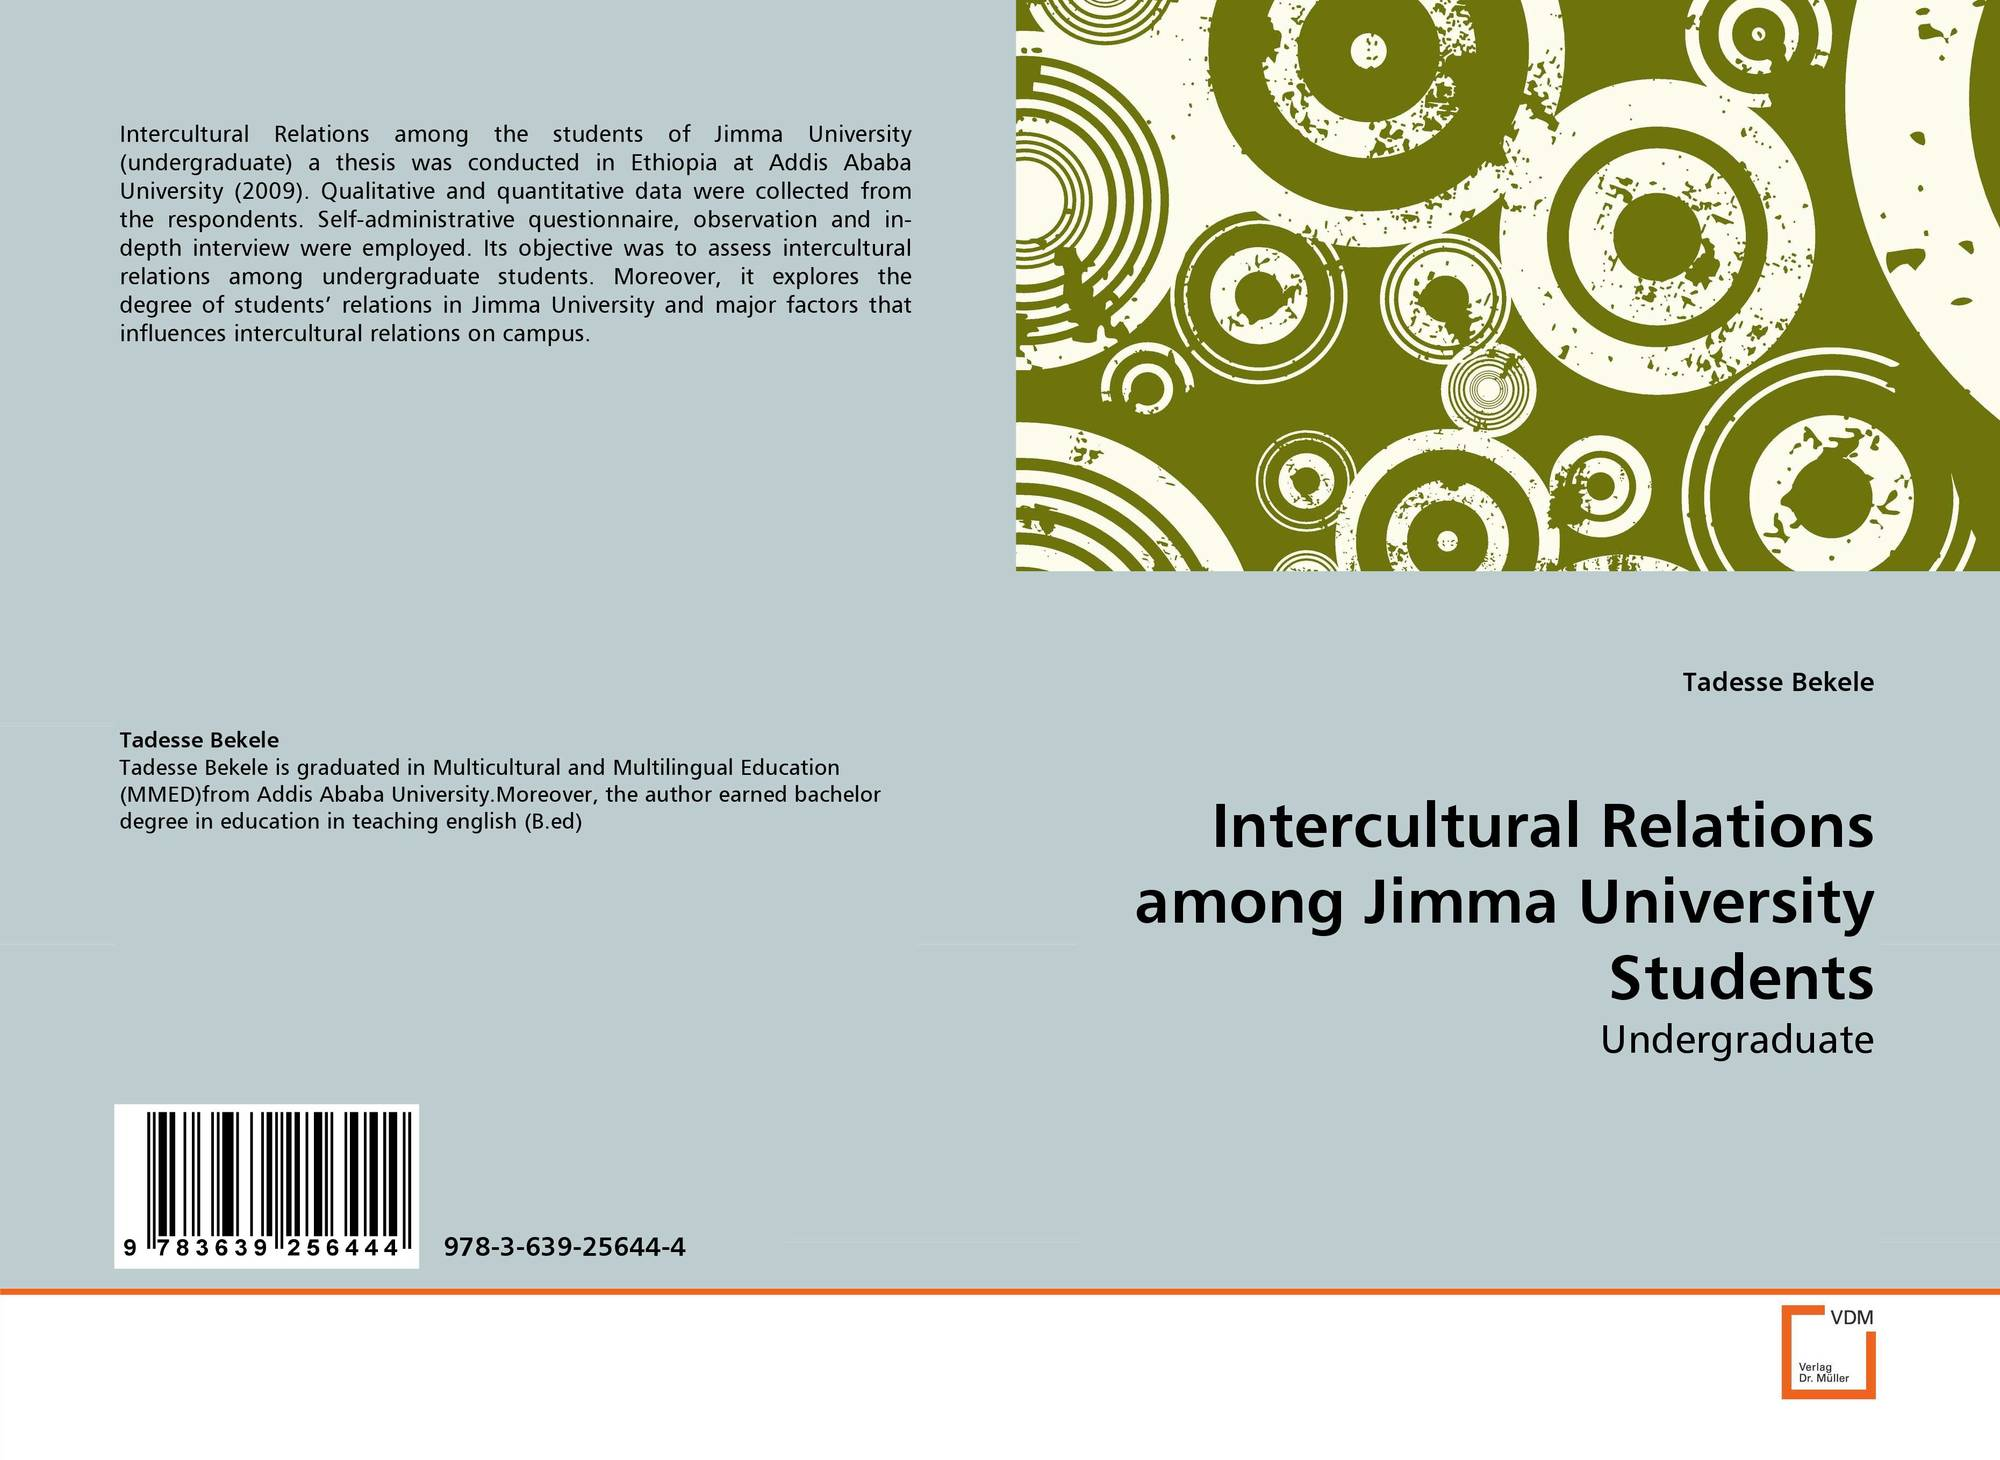 Intercultural Relations among Jimma University Students, 978-3-639